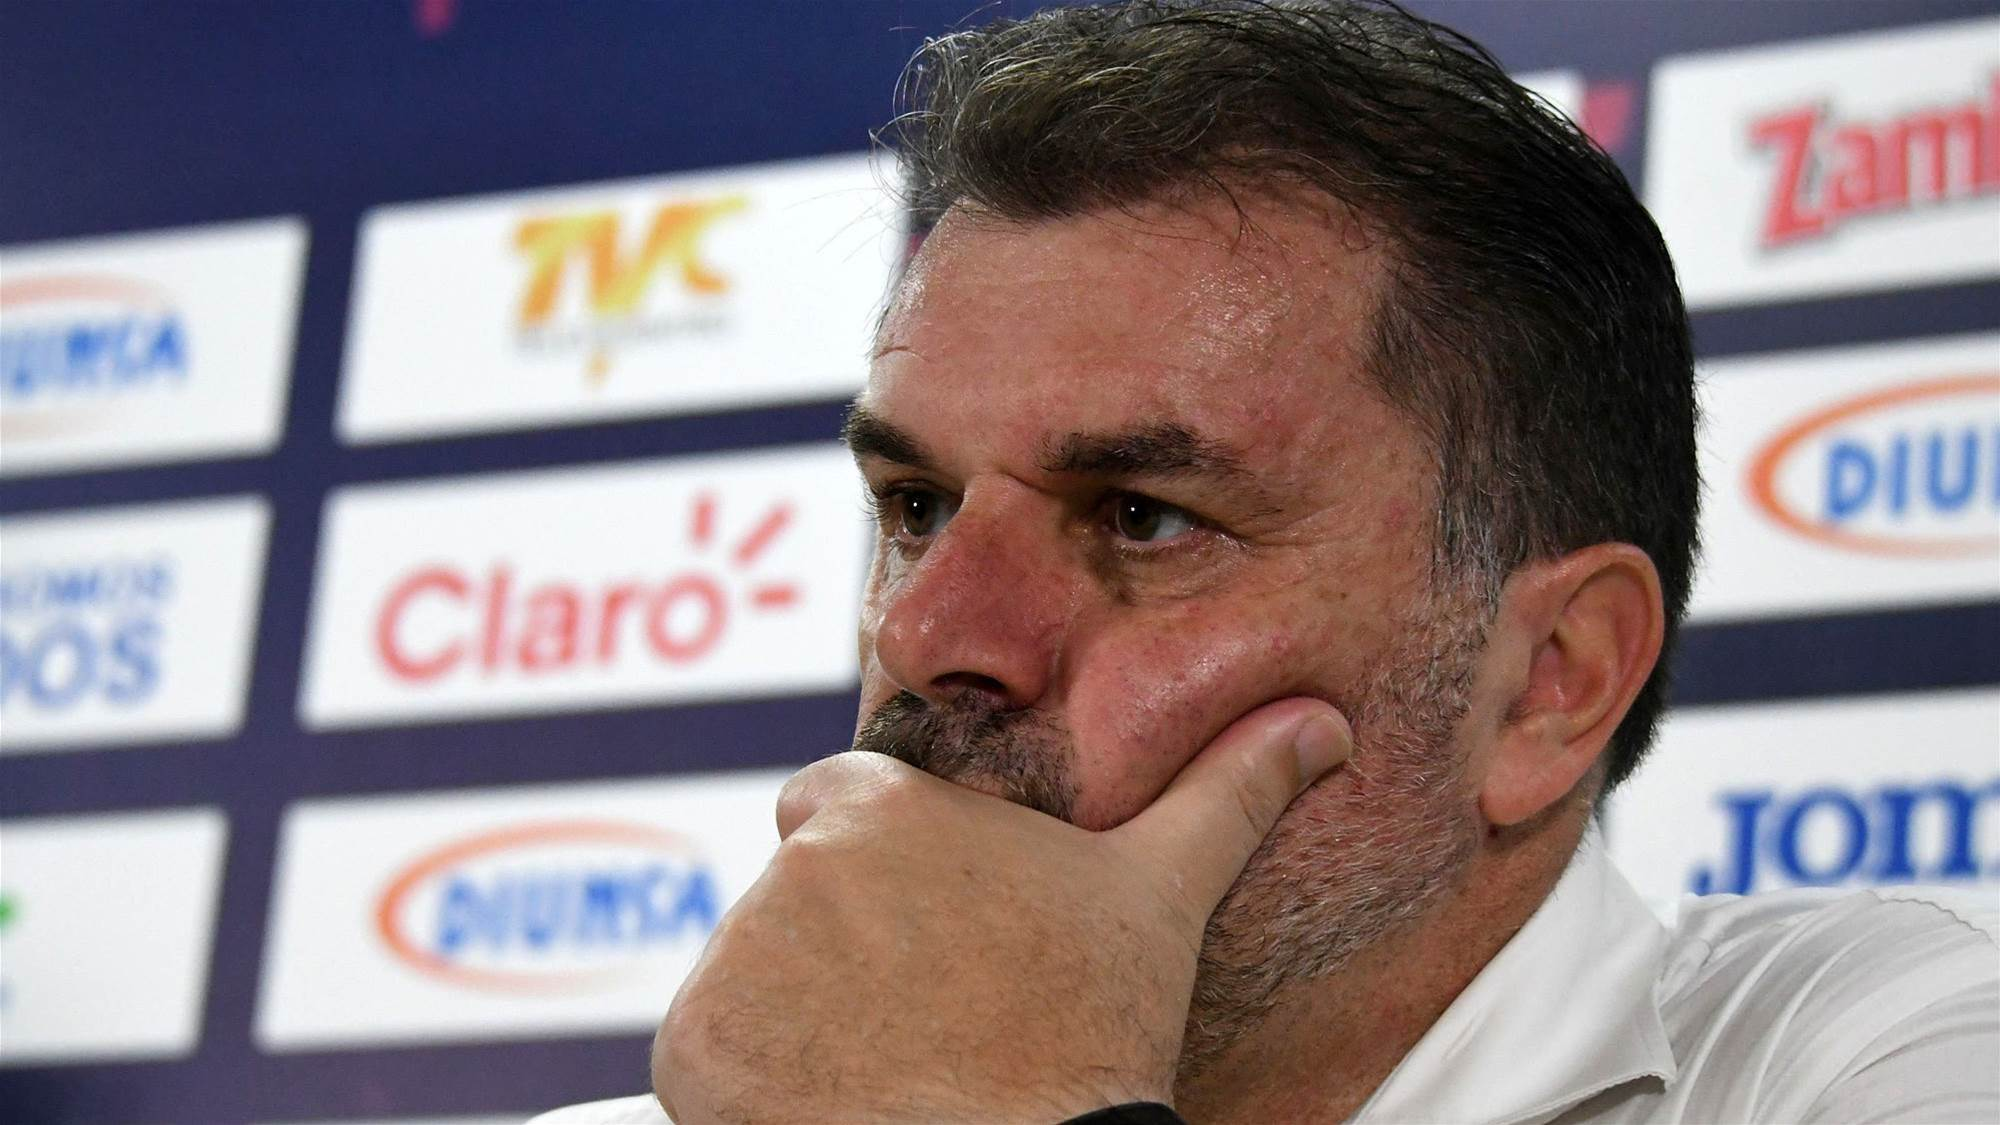 Ange disrespectful says Honduran media